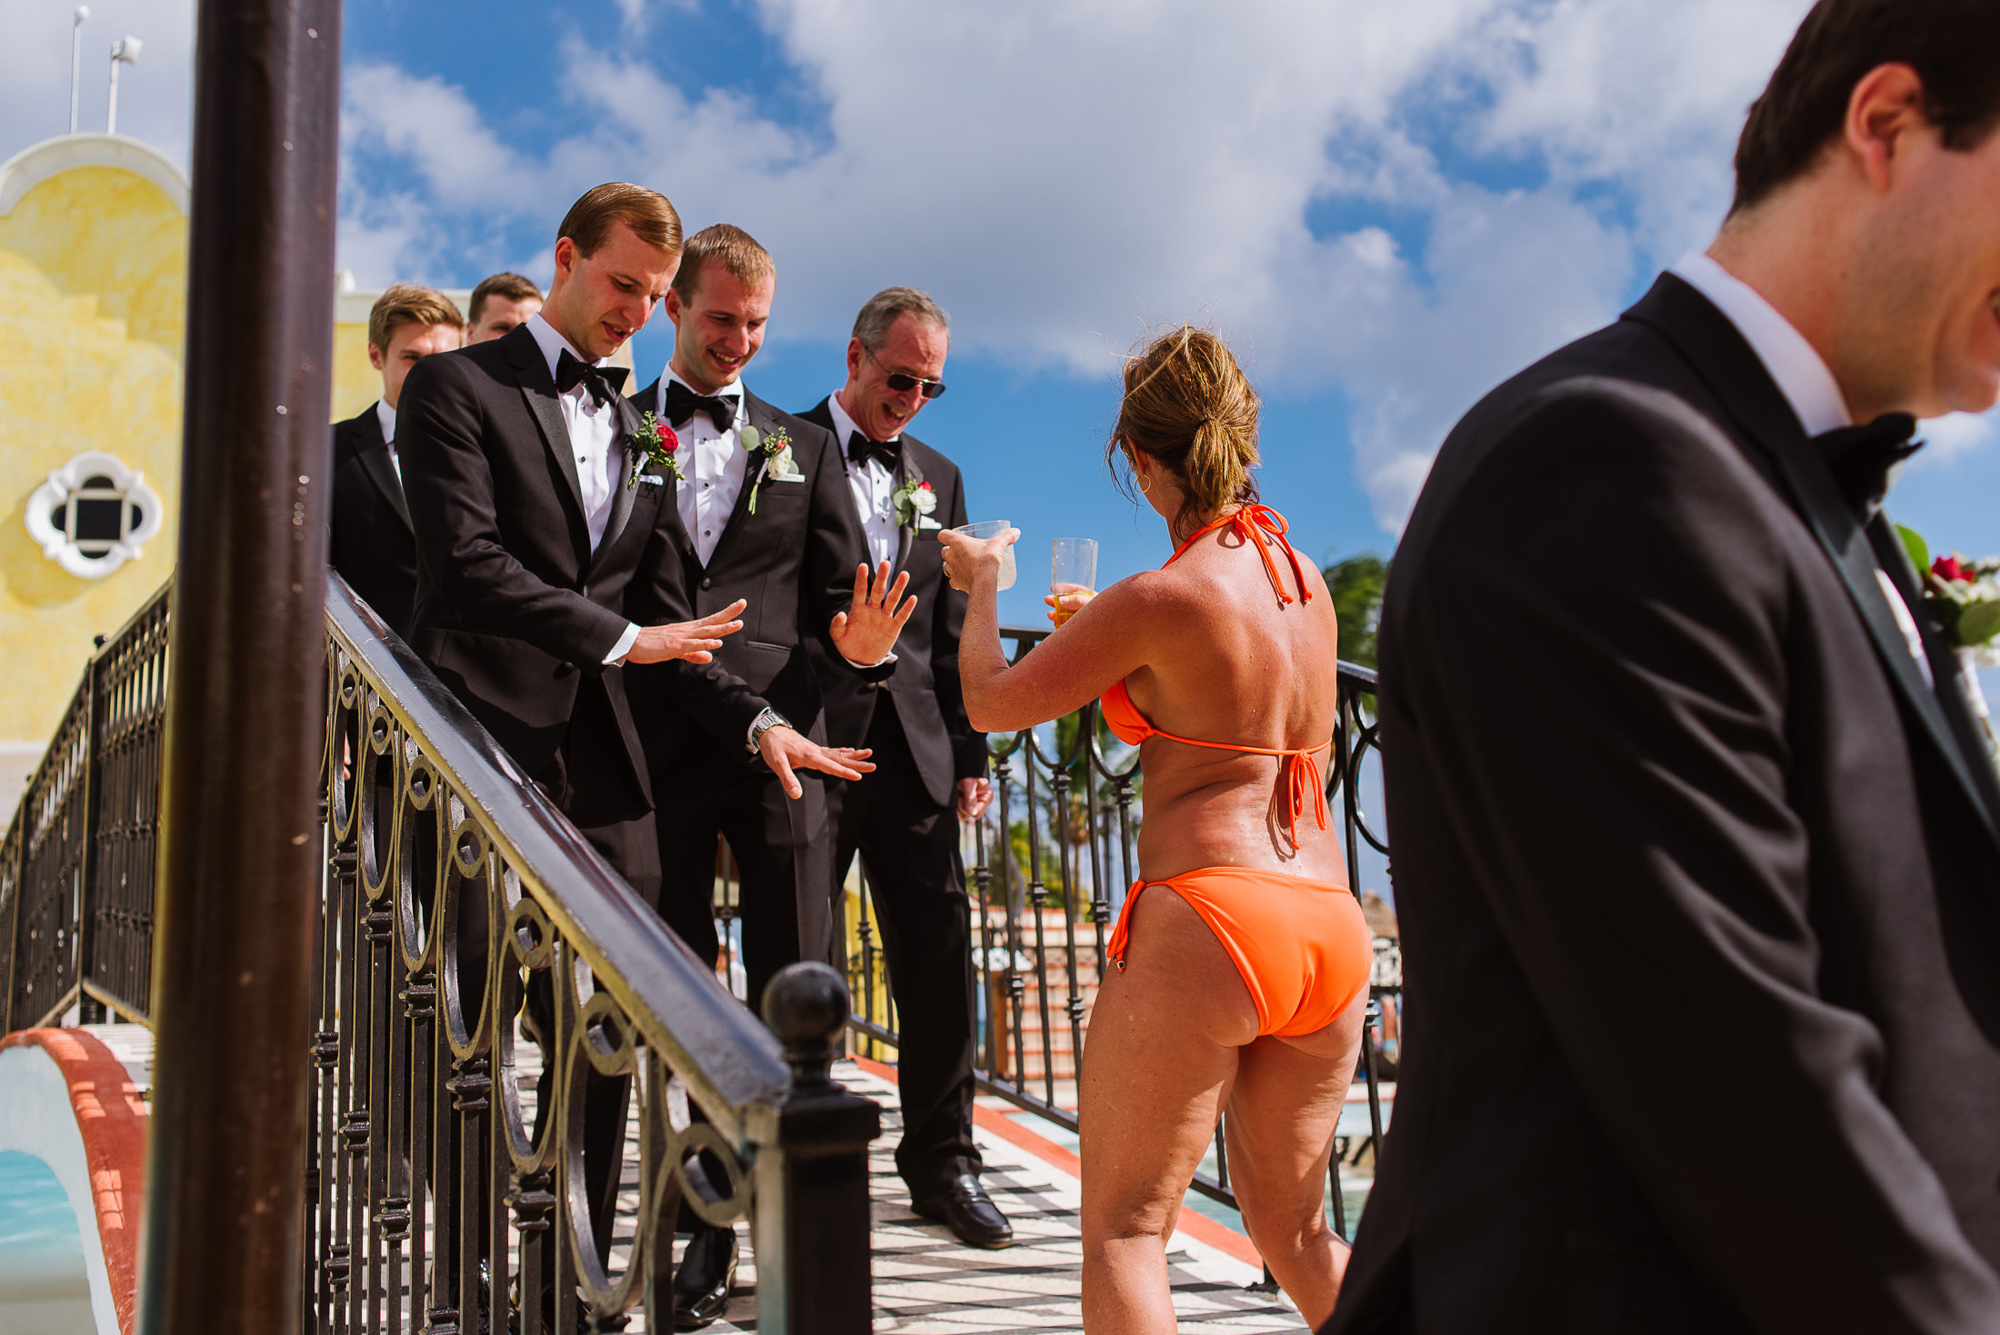 Groomsmen turning down drinks from bikini gal, by Citlalli Rico